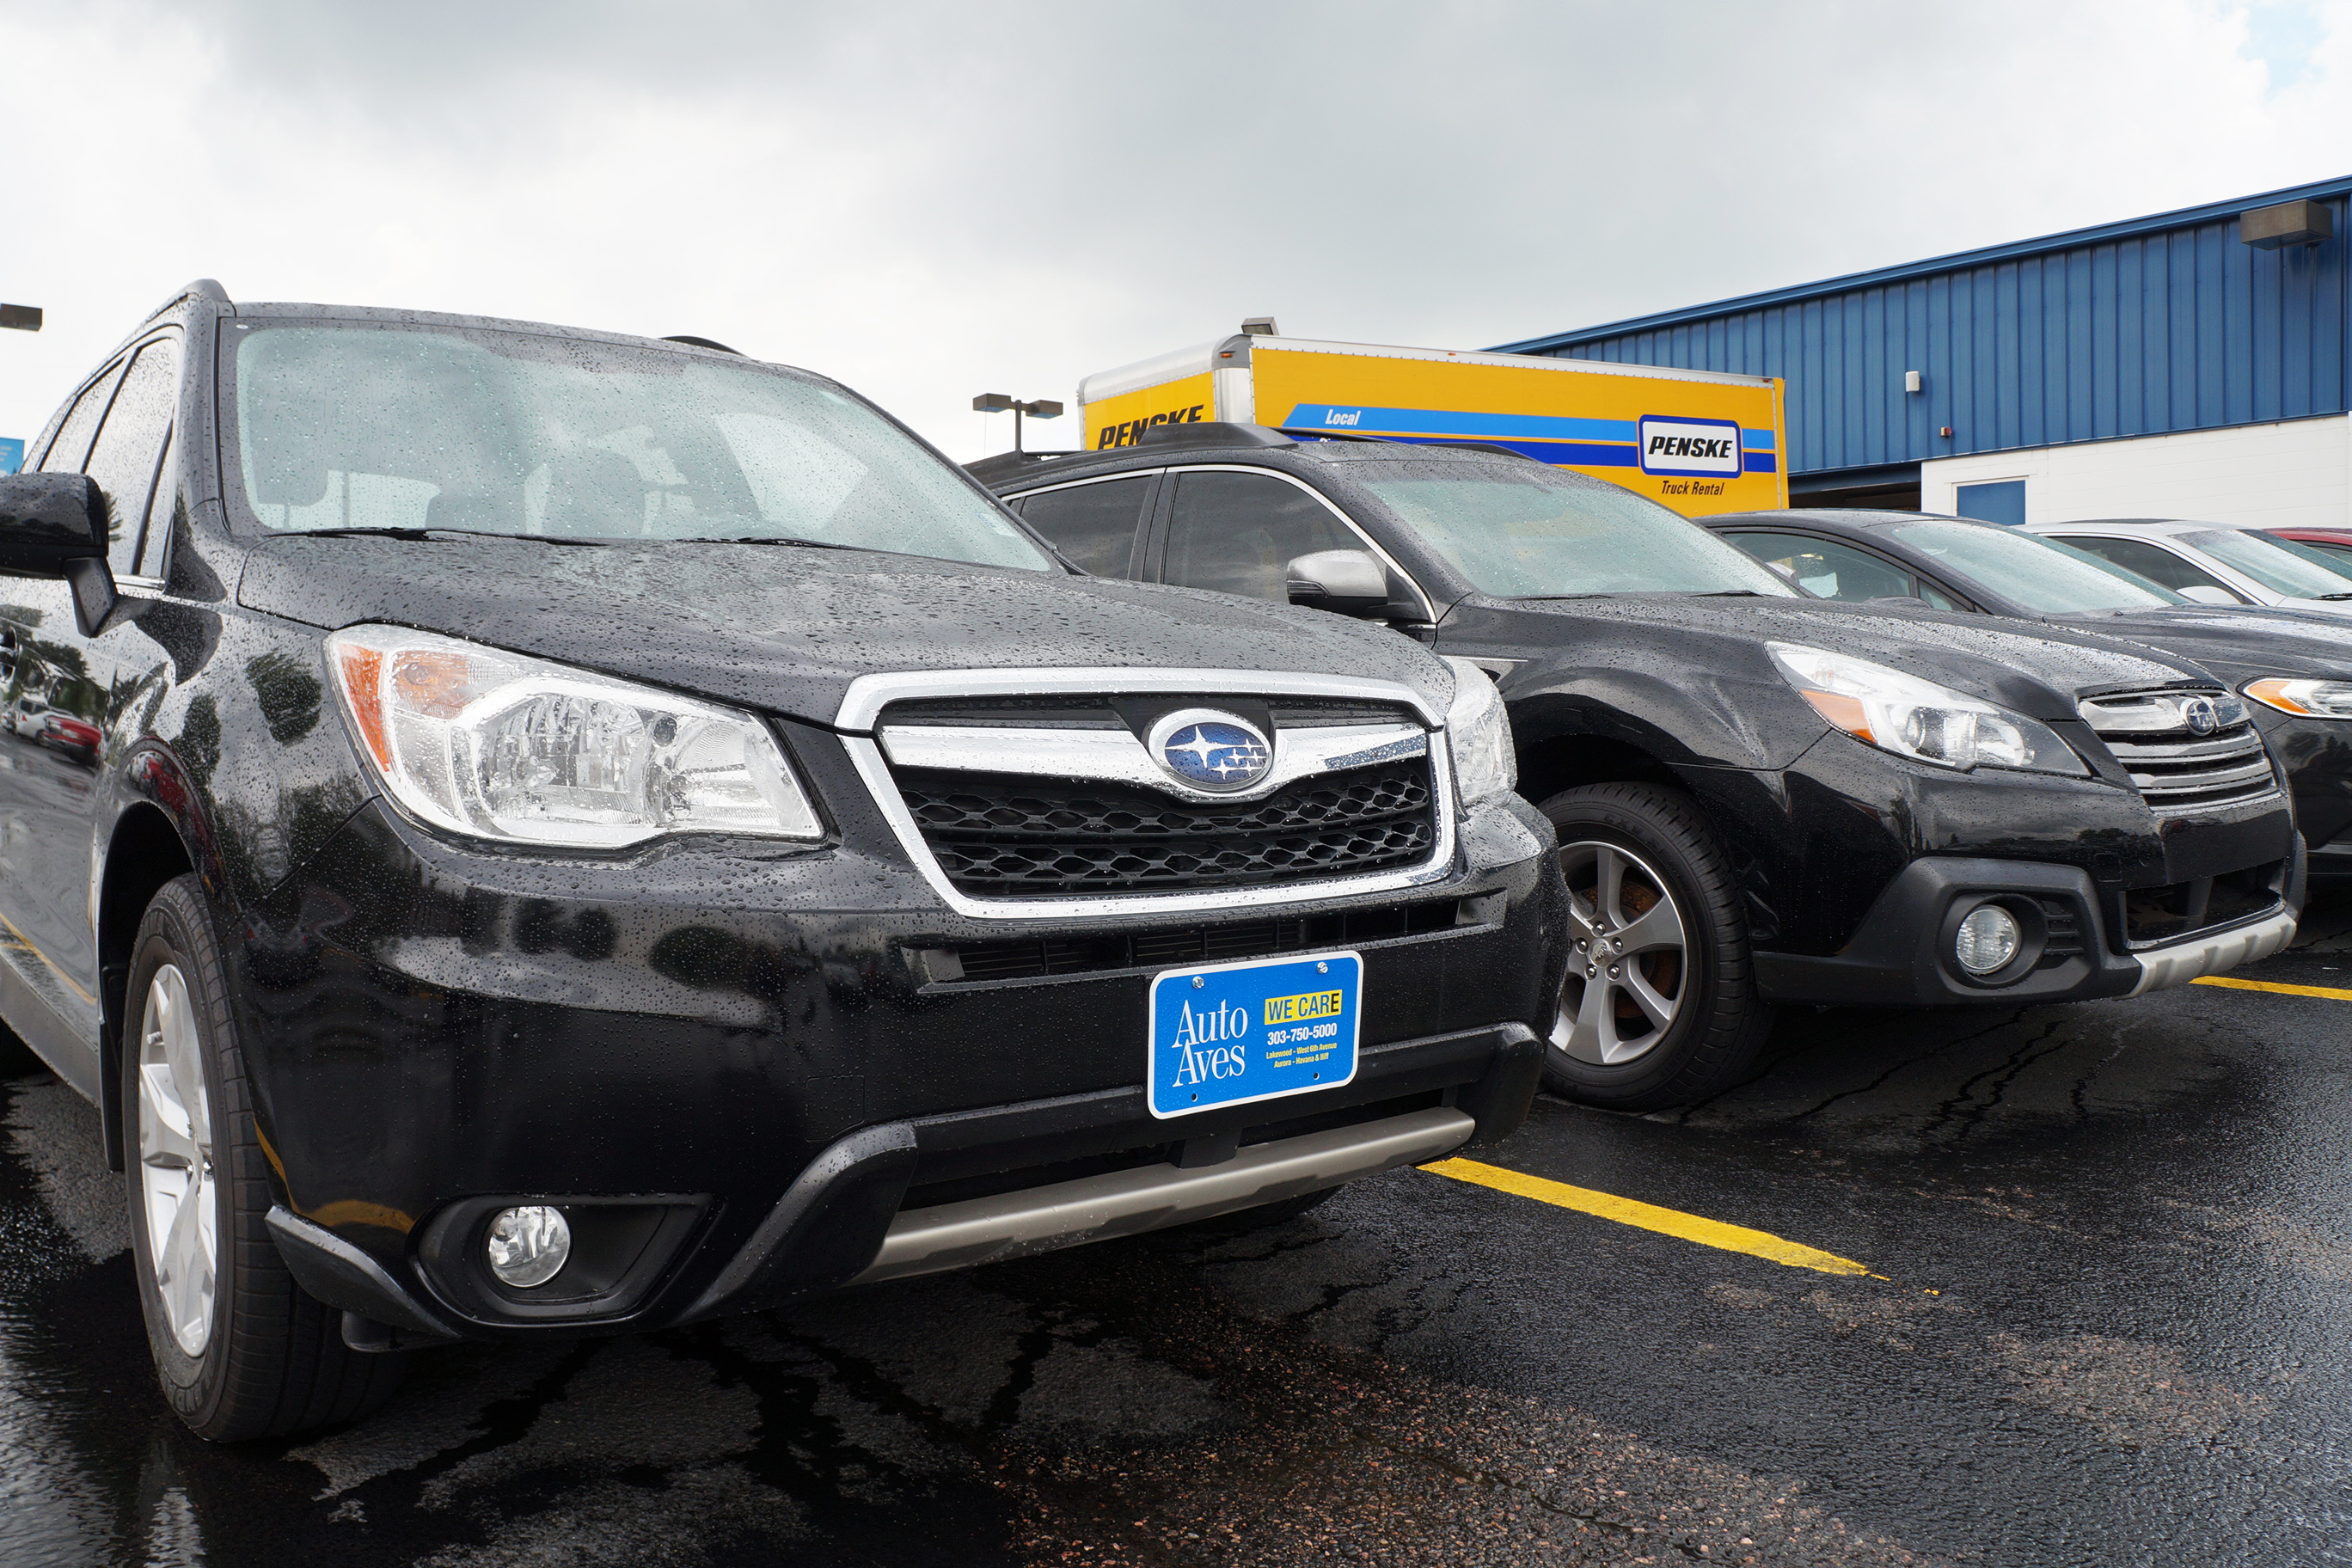 BusinessDen Denver drivers create hot spot for Subaru  BusinessDen